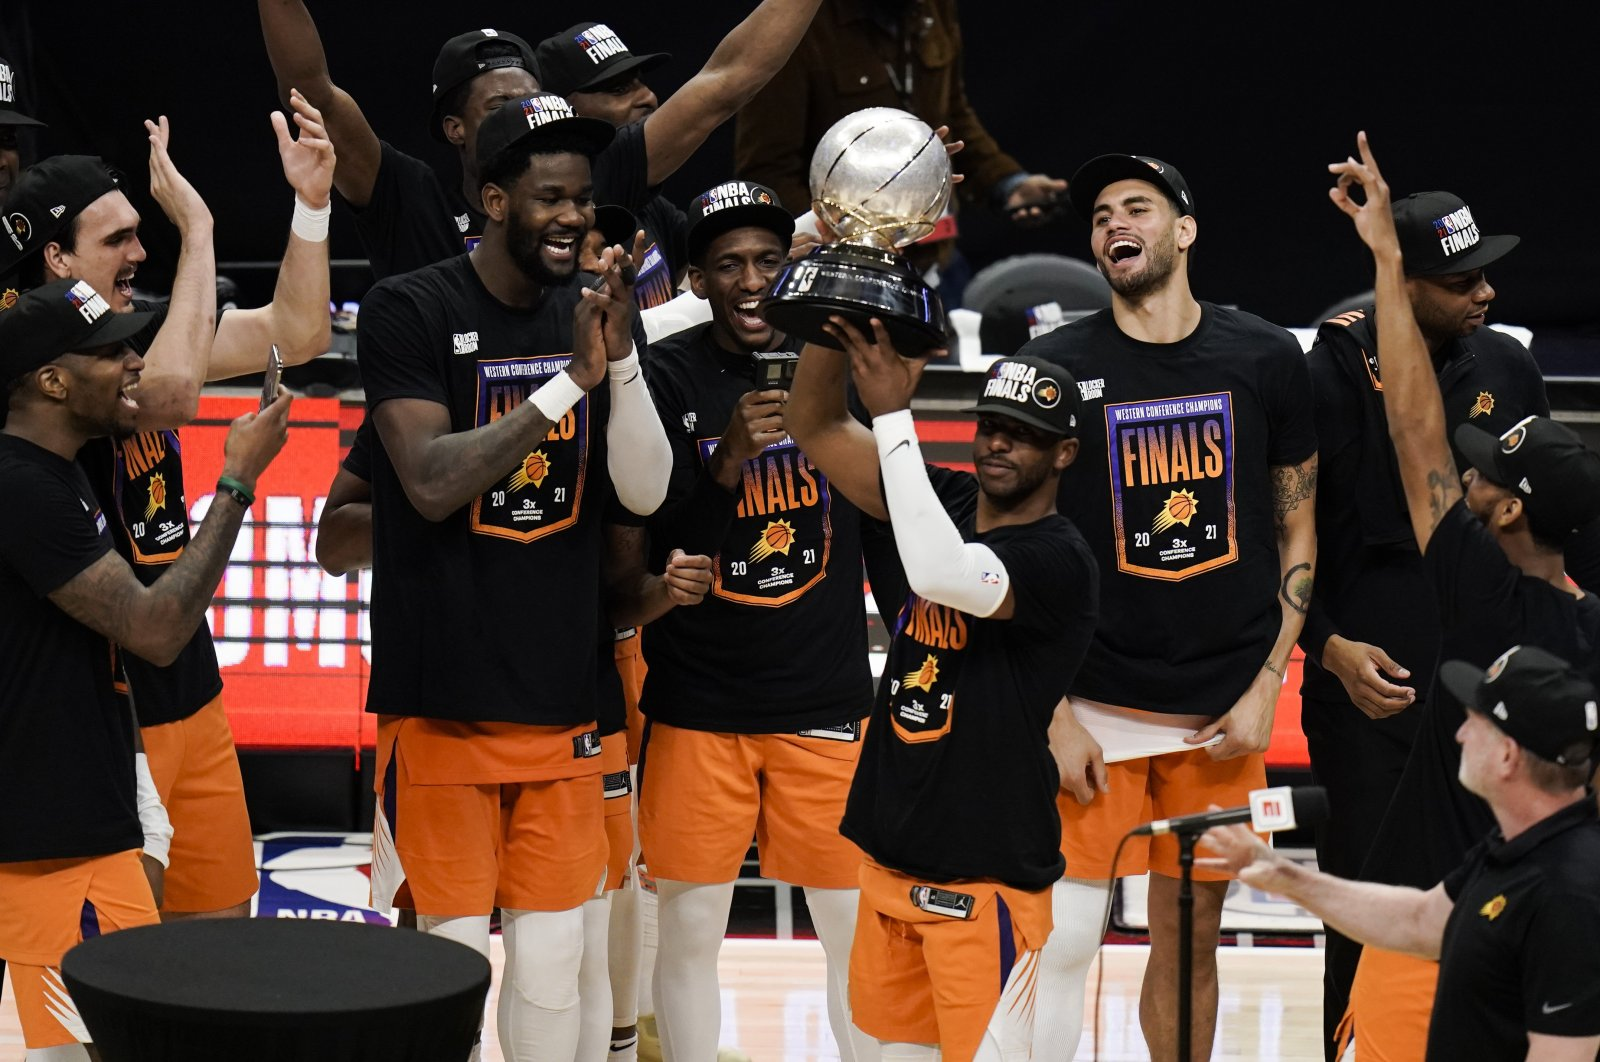 Phoenix Suns' Chris Paul lifts the trophy as he and his teammates celebrate after defeating the Los Angeles Clippers in Game 6 of the NBA basketball Western Conference Finals, June 30, 2021, Los Angeles, U.S. (AP Photo)